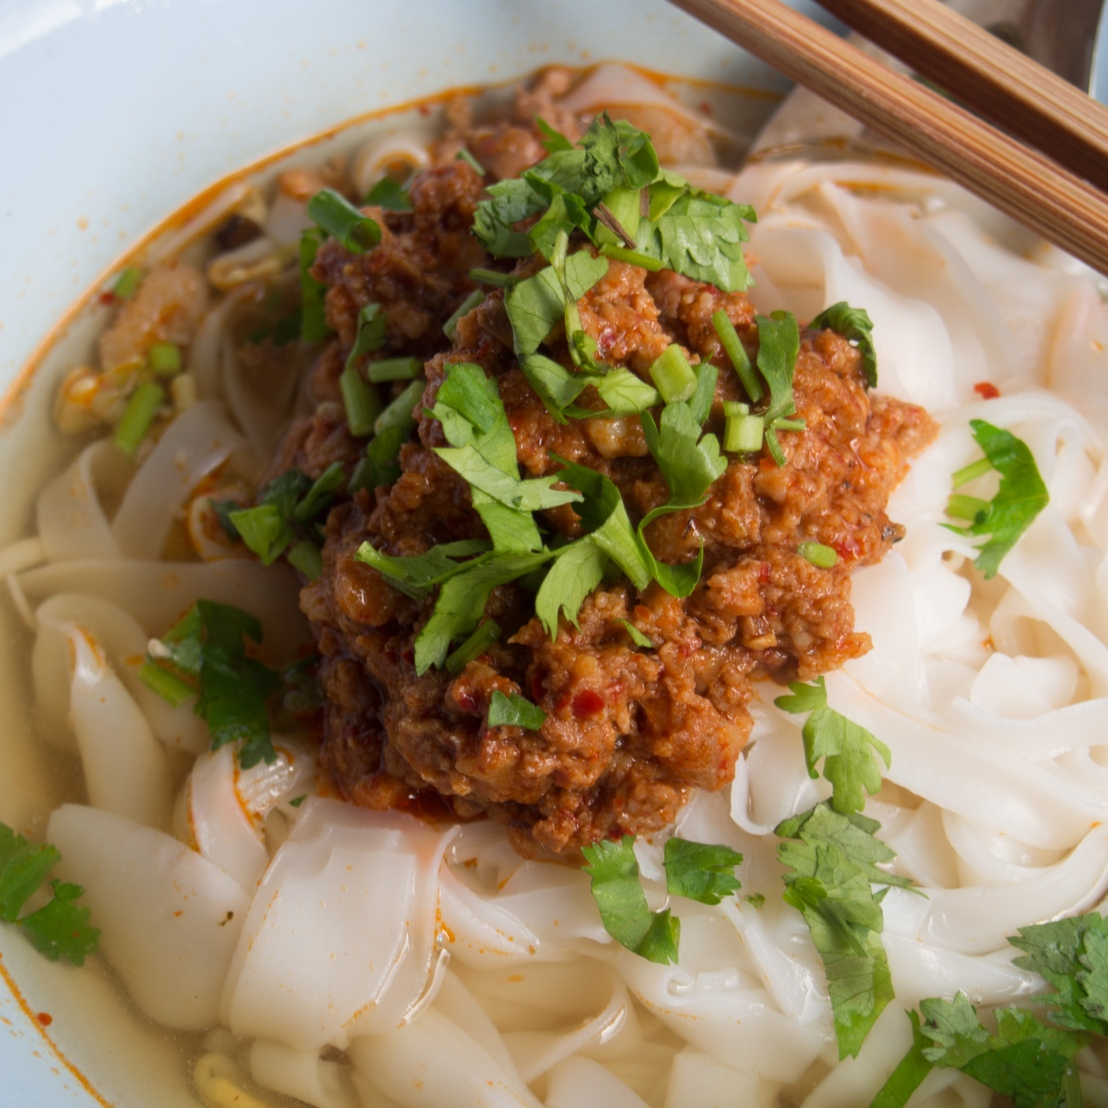 Do you know any Thai expressions about noodles?